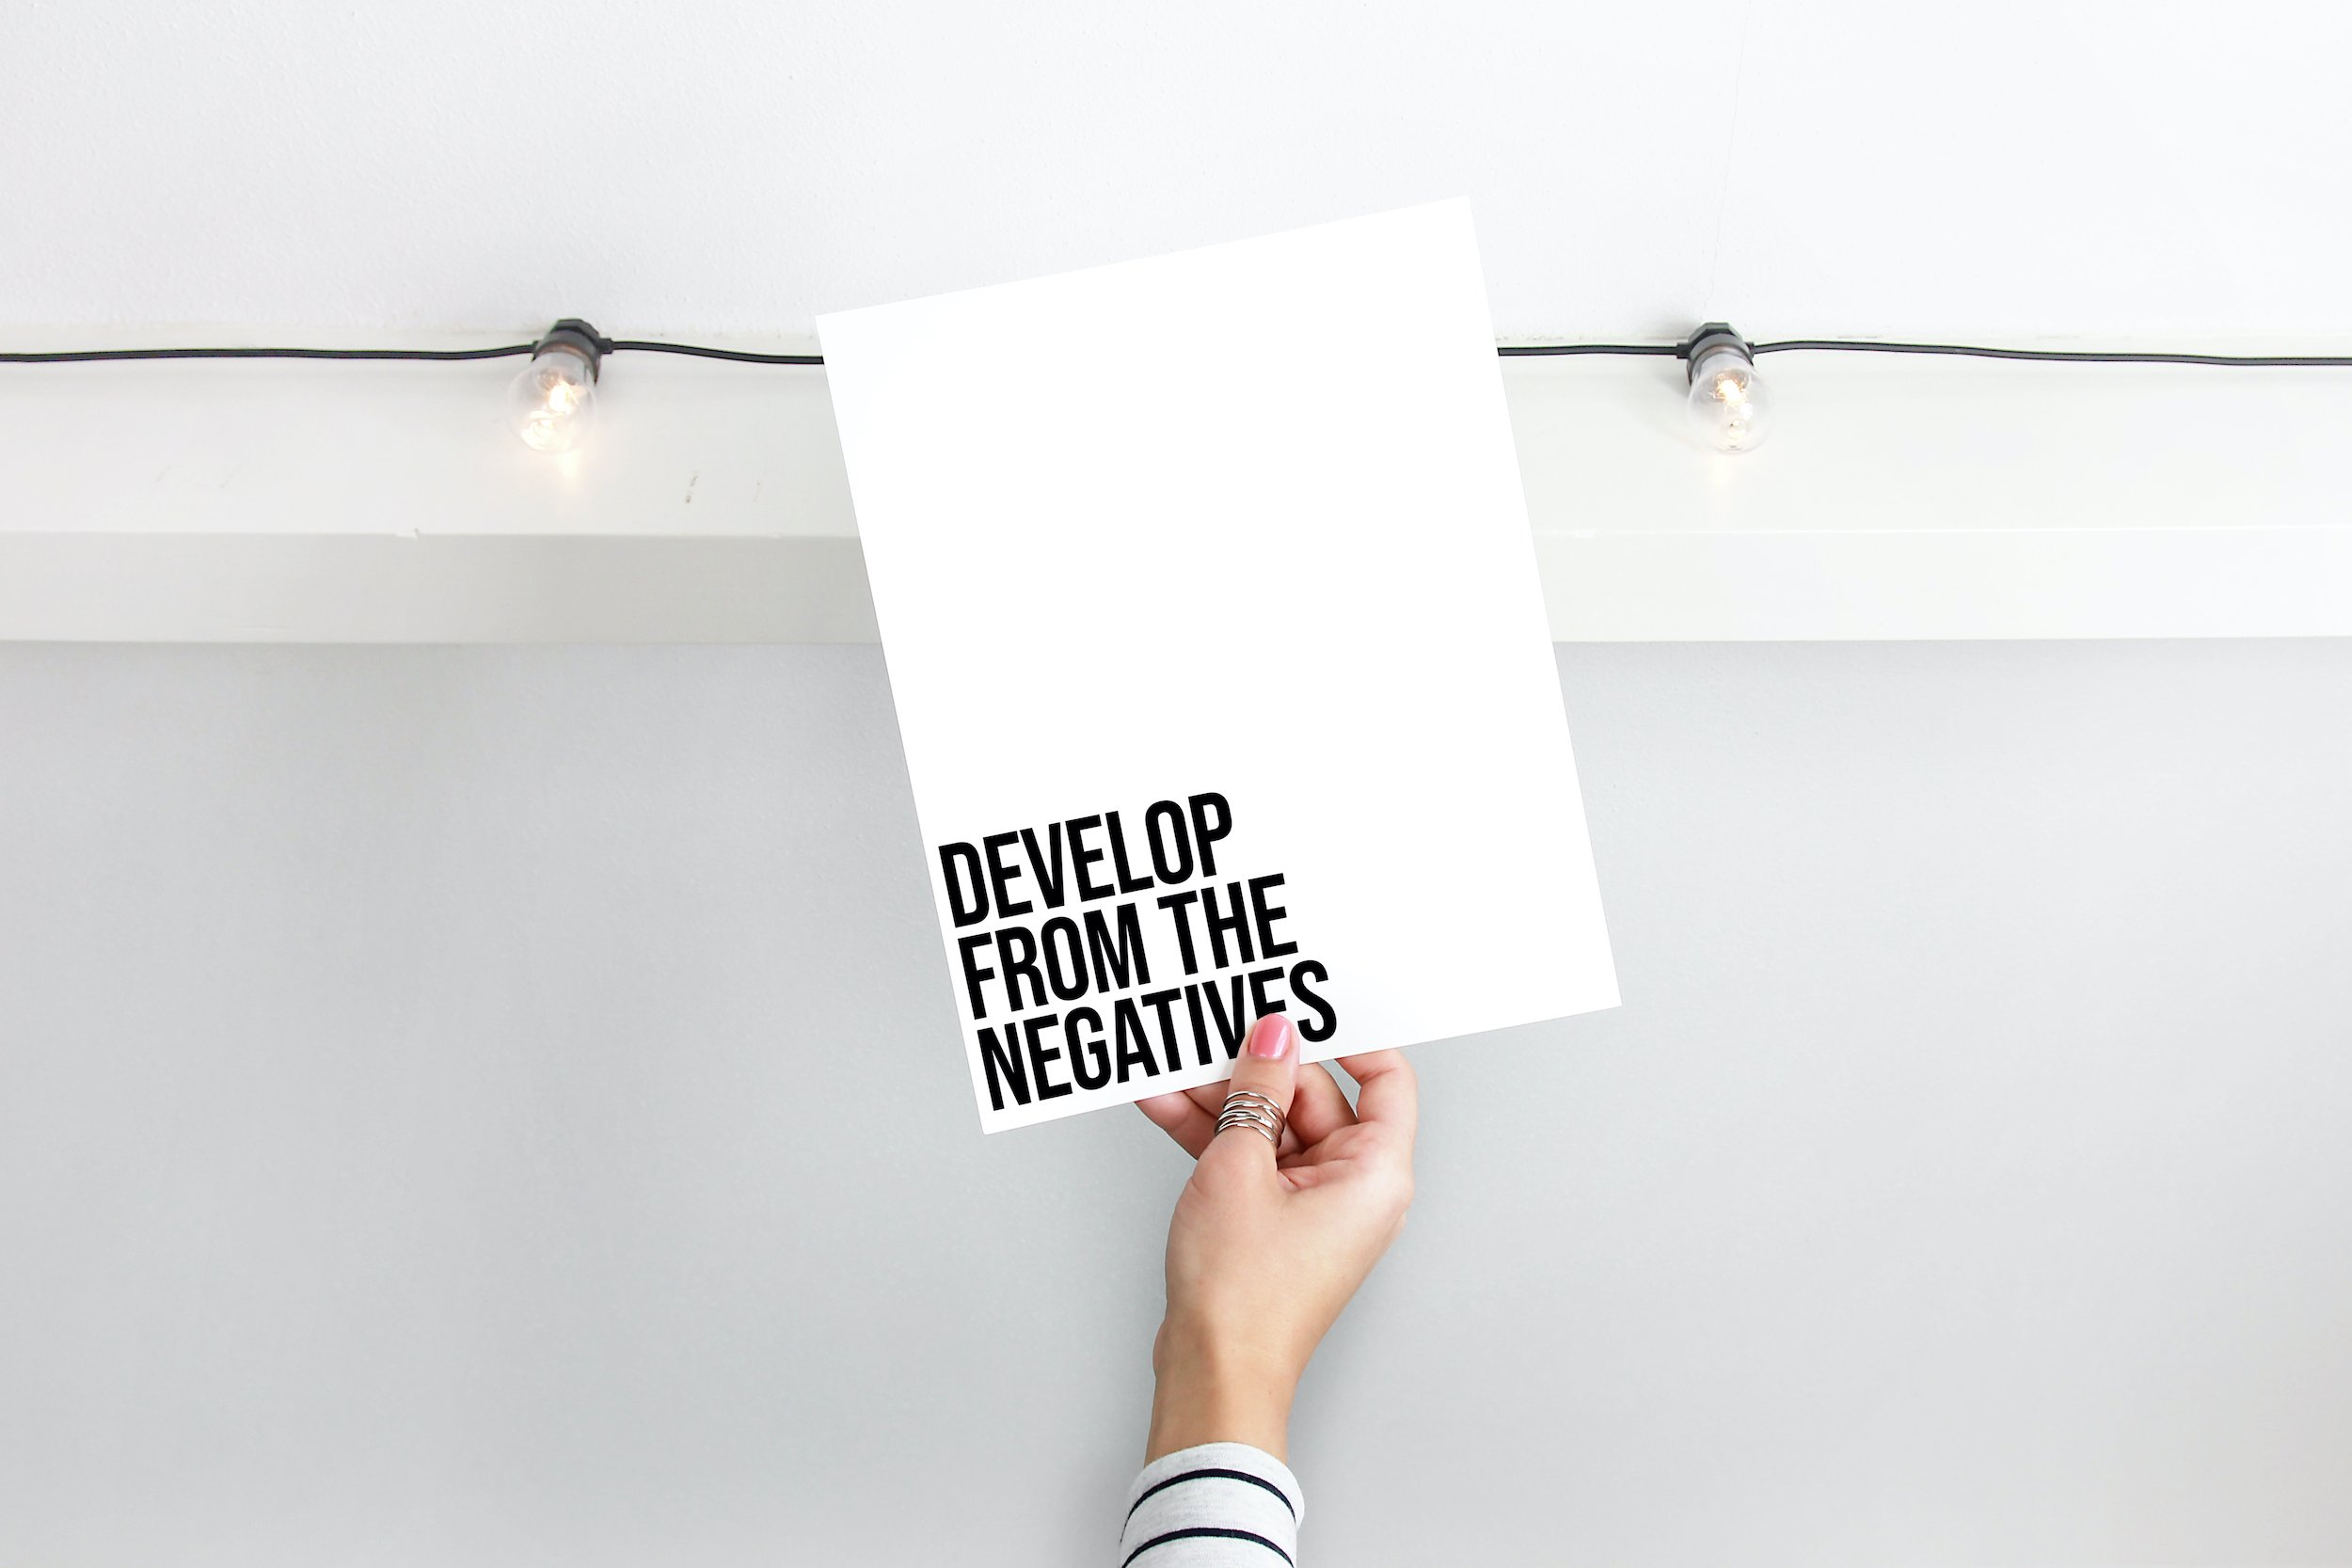 Develop from the negatives print